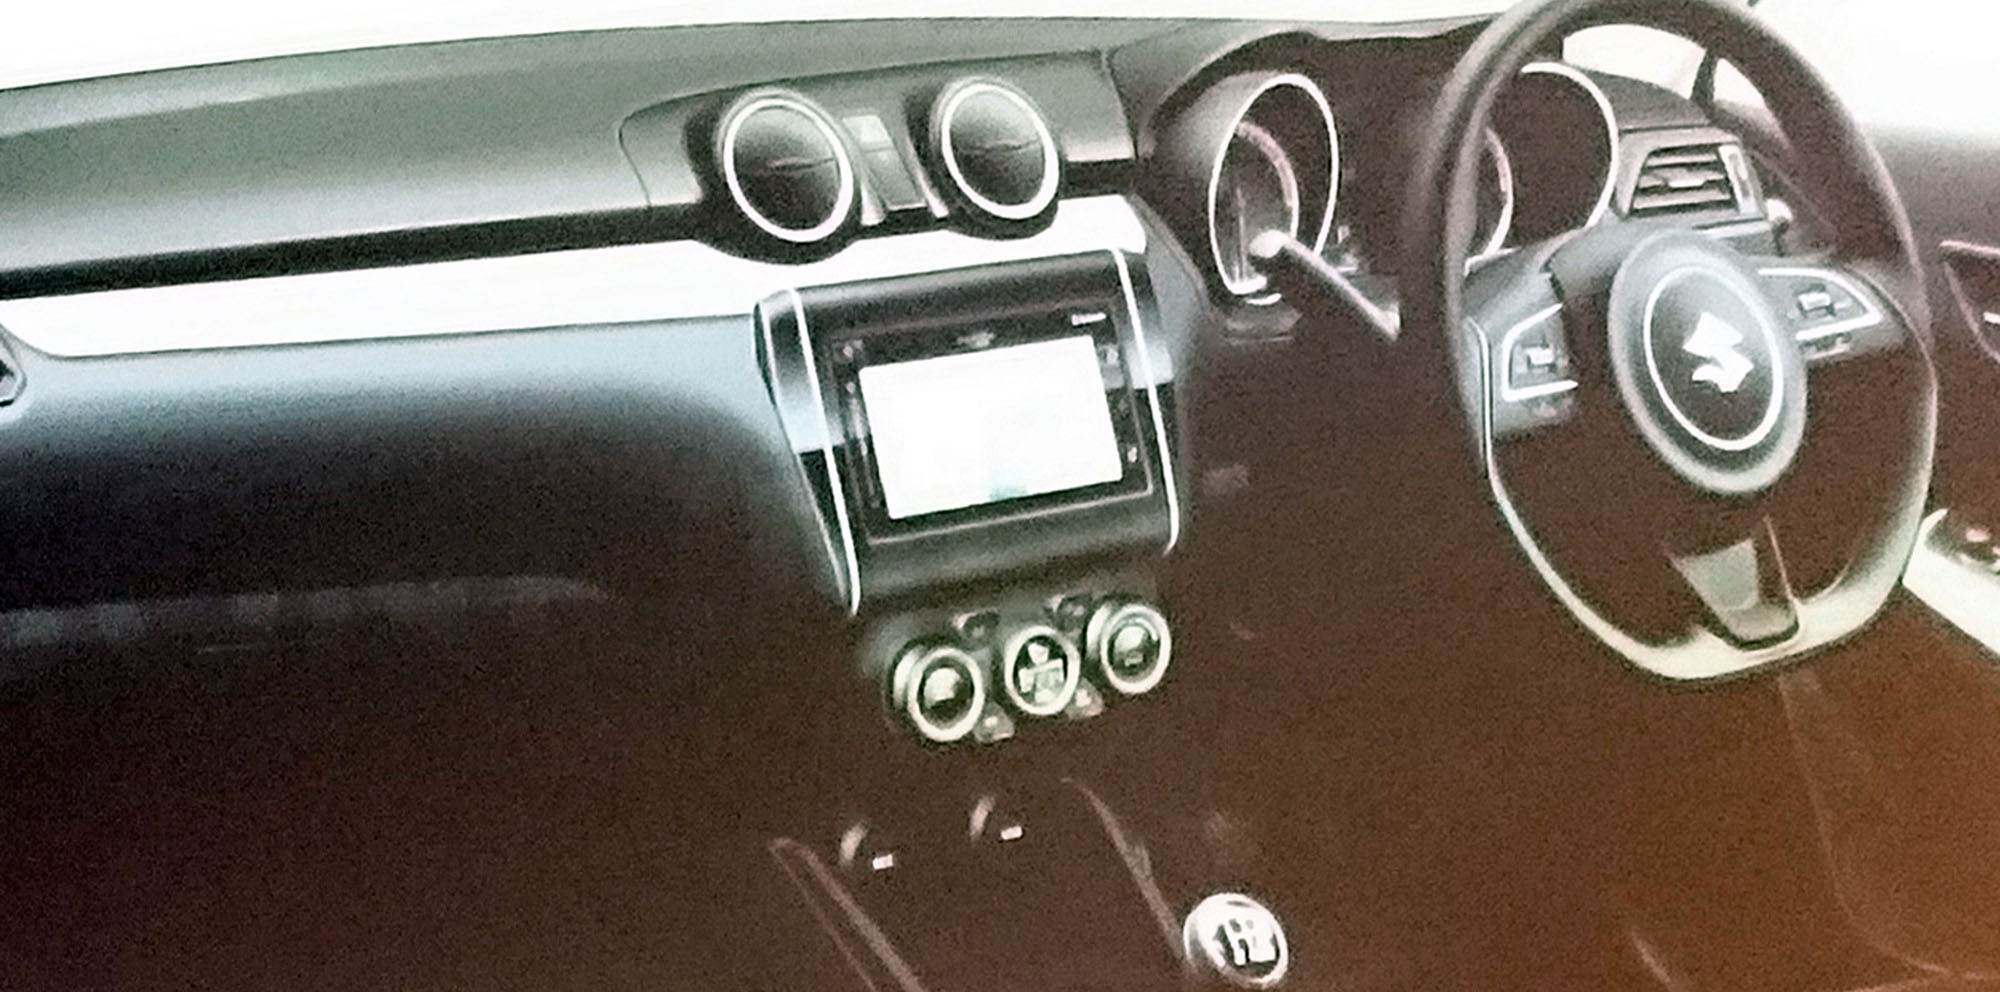 suzuki-swift-sport-leak-interior.jpg